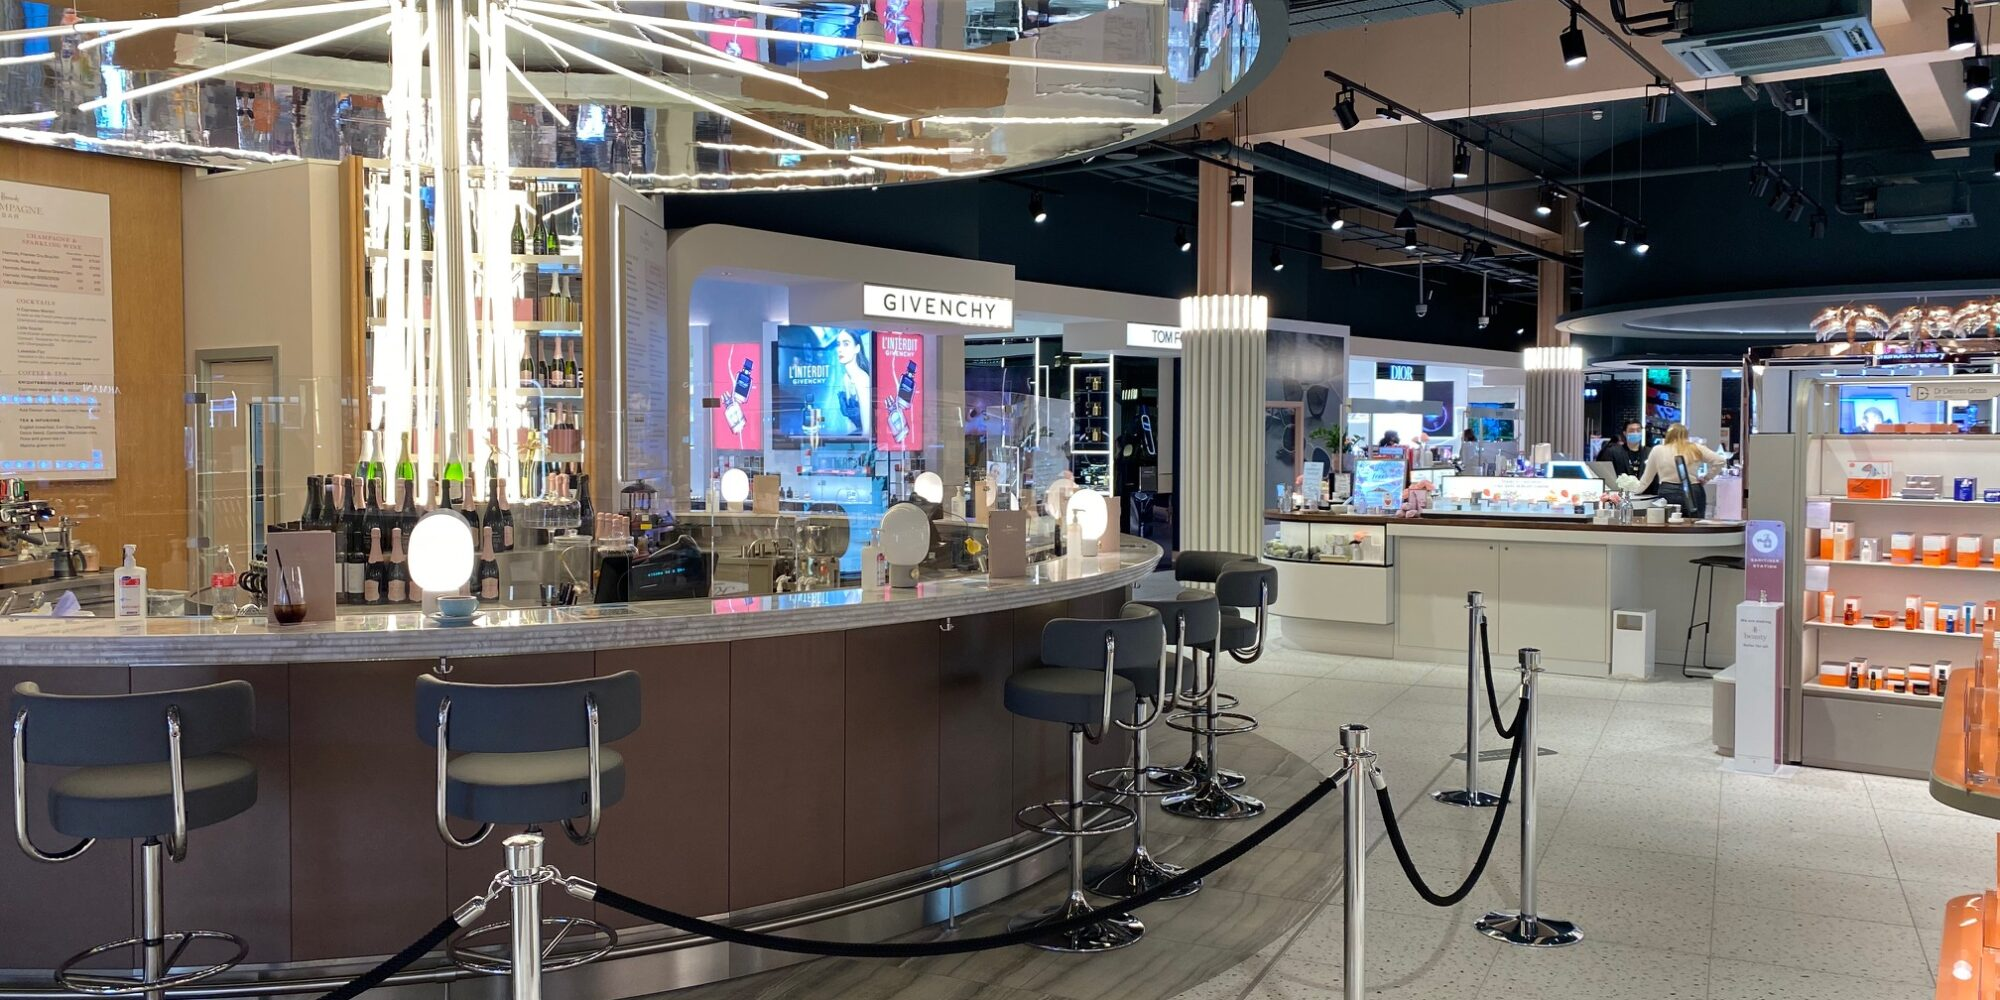 Harrods Moves Forward With Standalone H Beauty Concept As The Pandemic Stokes Retail Uncertainty